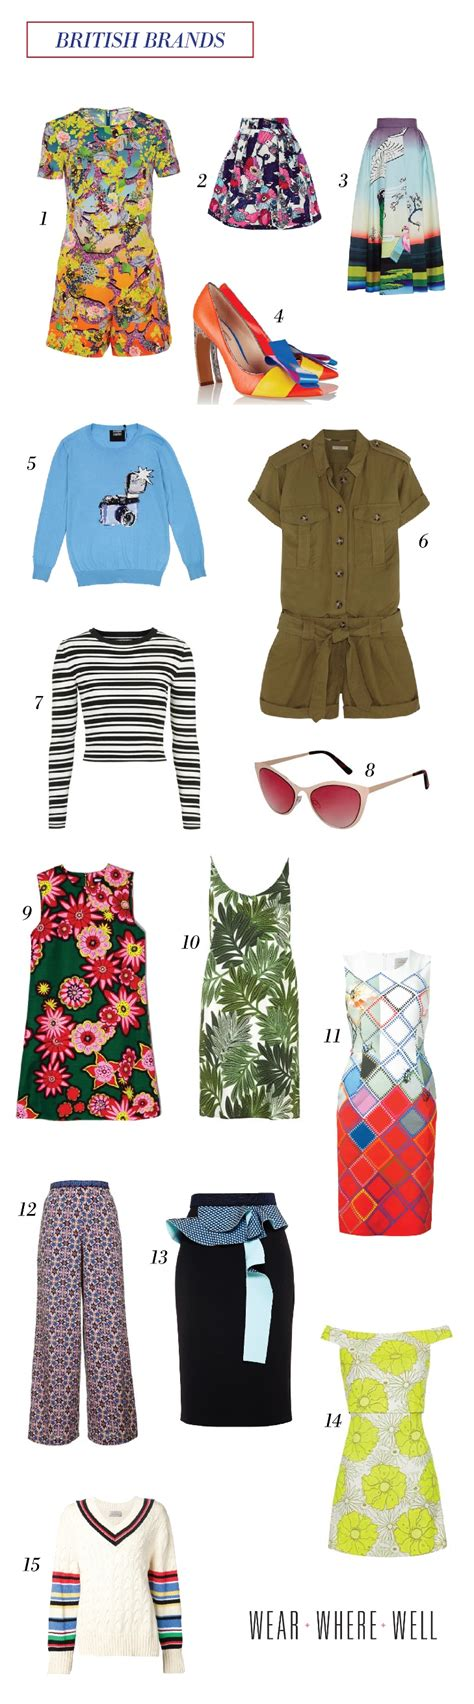 Friday Fashion Fav The It Lists Fashion Finds by Friday Favorite Finds Fashion Carrie Colbert